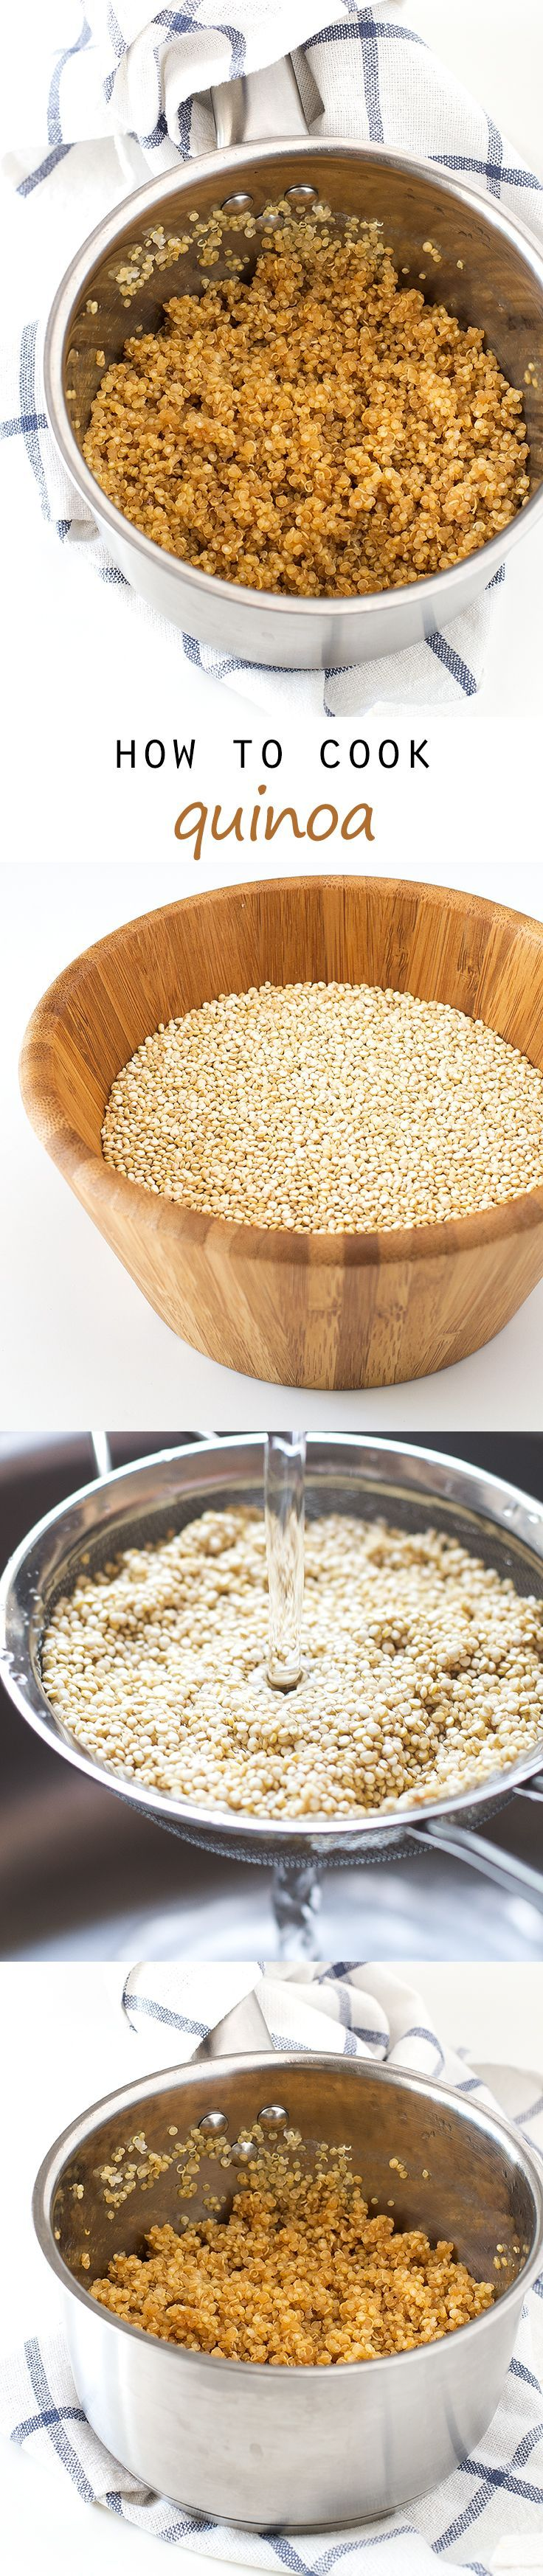 How To Cook Quinoa | http://simpleveganblog.com #vegan #glutenfree